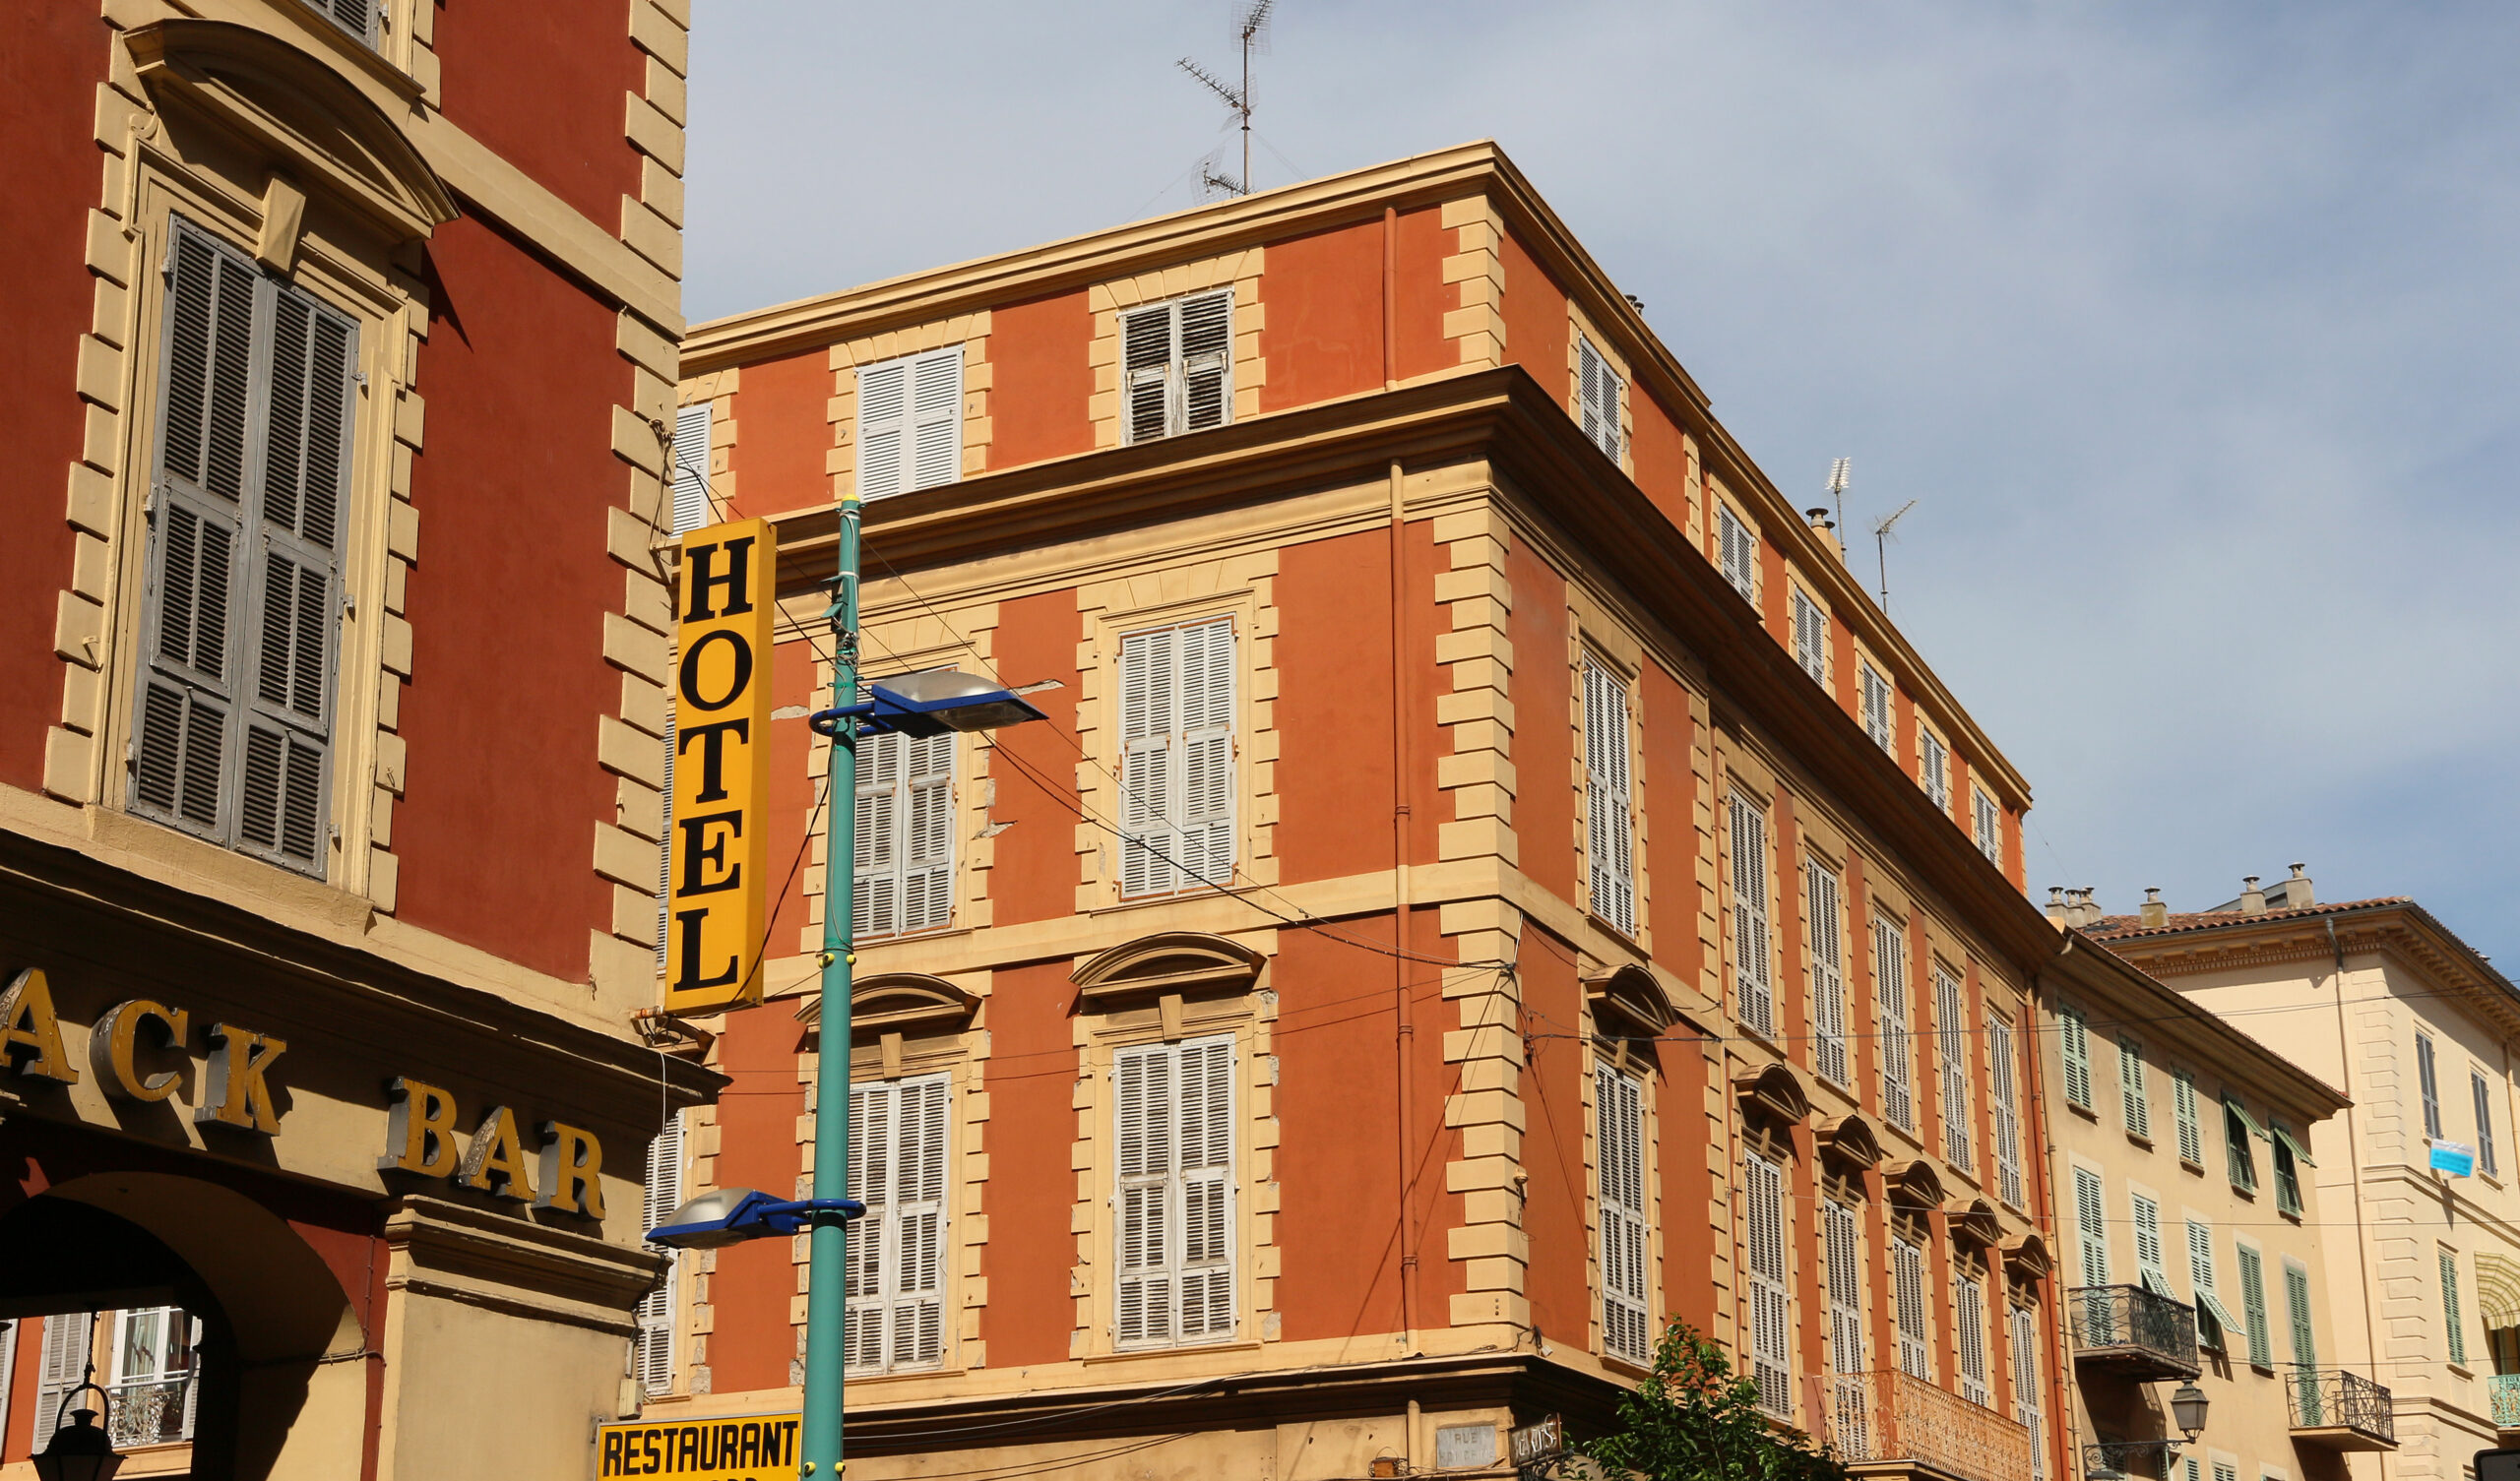 old red buildings in Menton + hotel sign, French Riviera